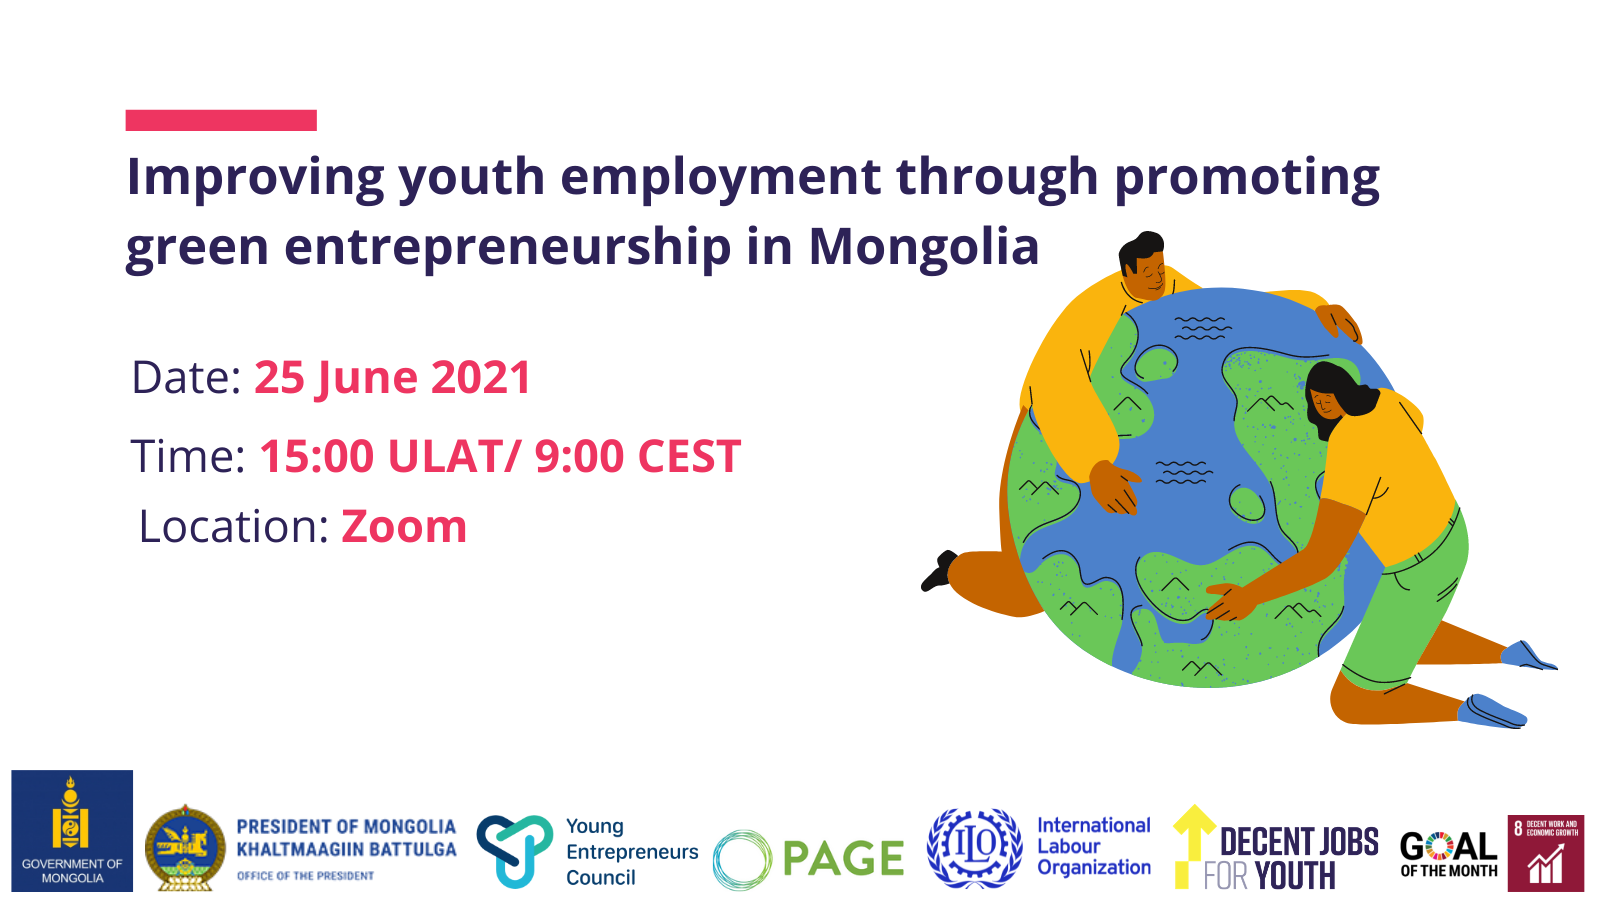 Green Entrepreneurship and Decent Jobs for Youth in Mongolia